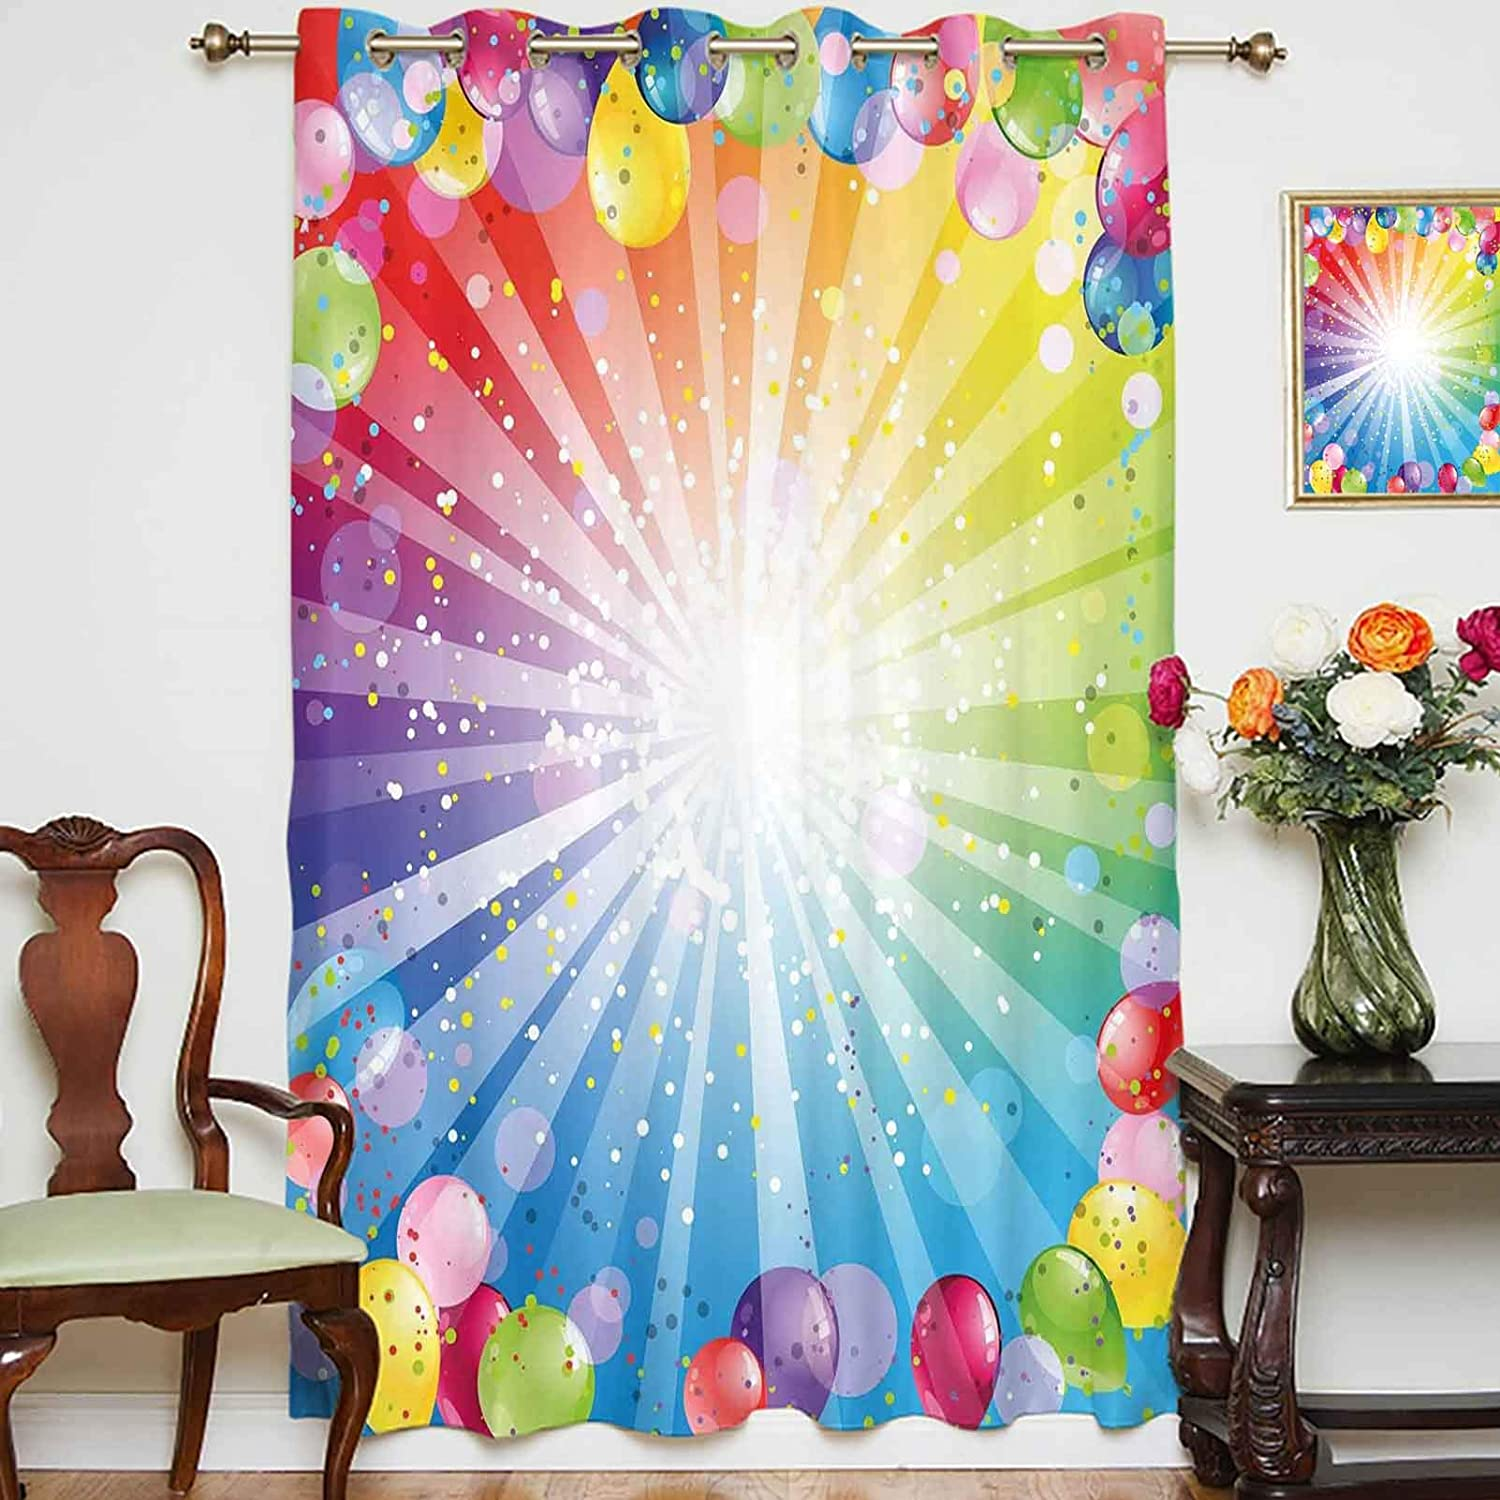 oobon Blackout List price Curtains Panels Festive Backdrop Striped Bal with Very popular